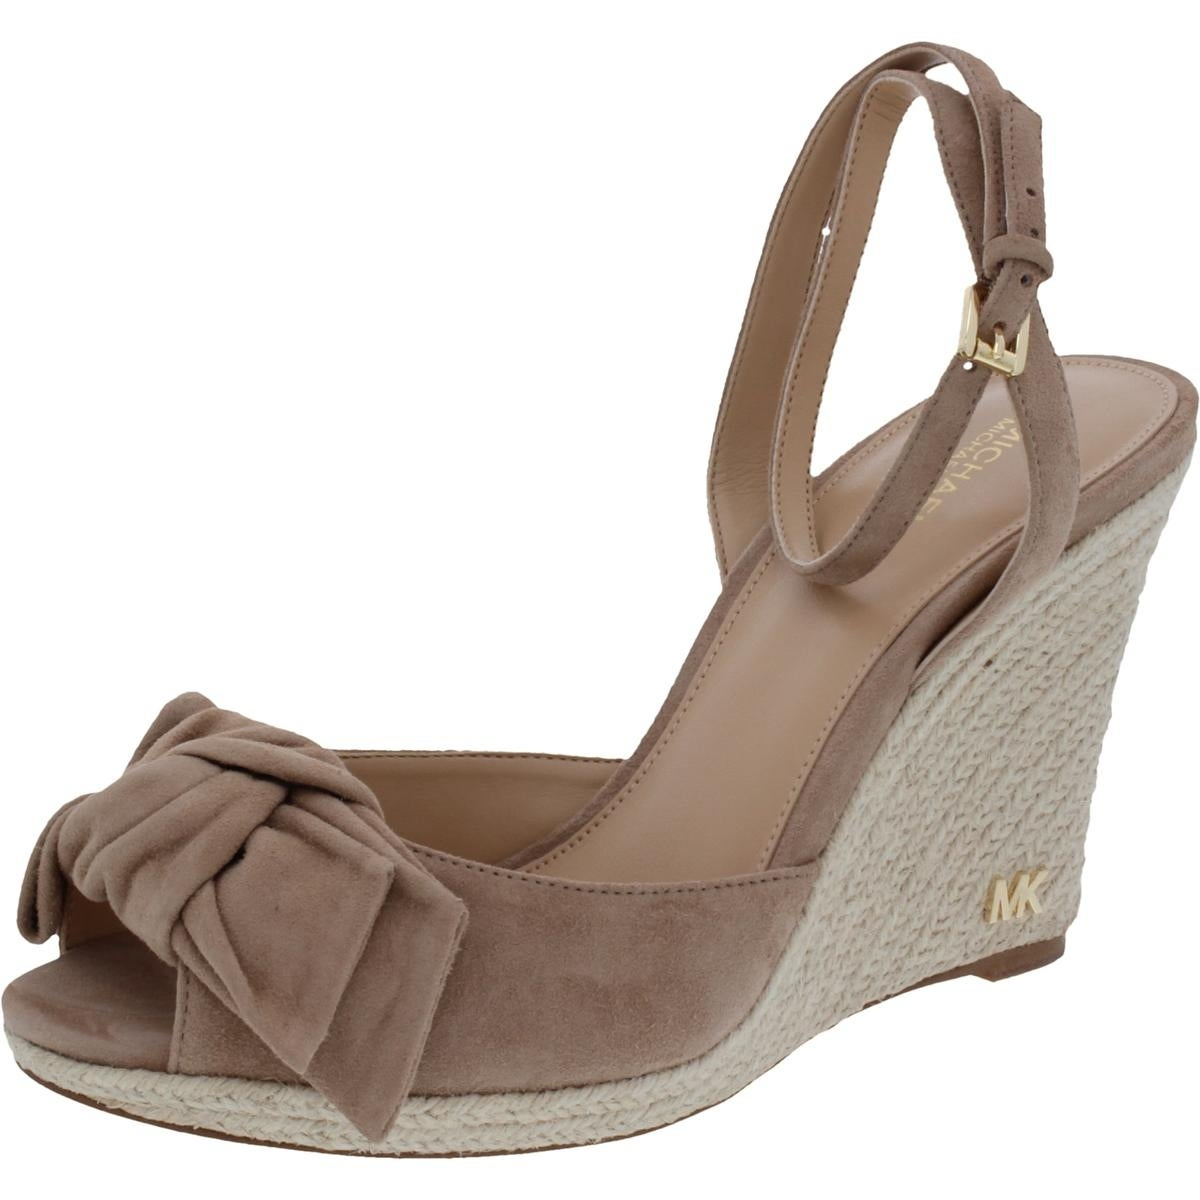 f02cc4e8e837 Shop MICHAEL Michael Kors Womens Willa Wedge Sandals Suede Peep Toe - Free  Shipping Today - Overstock - 21459231